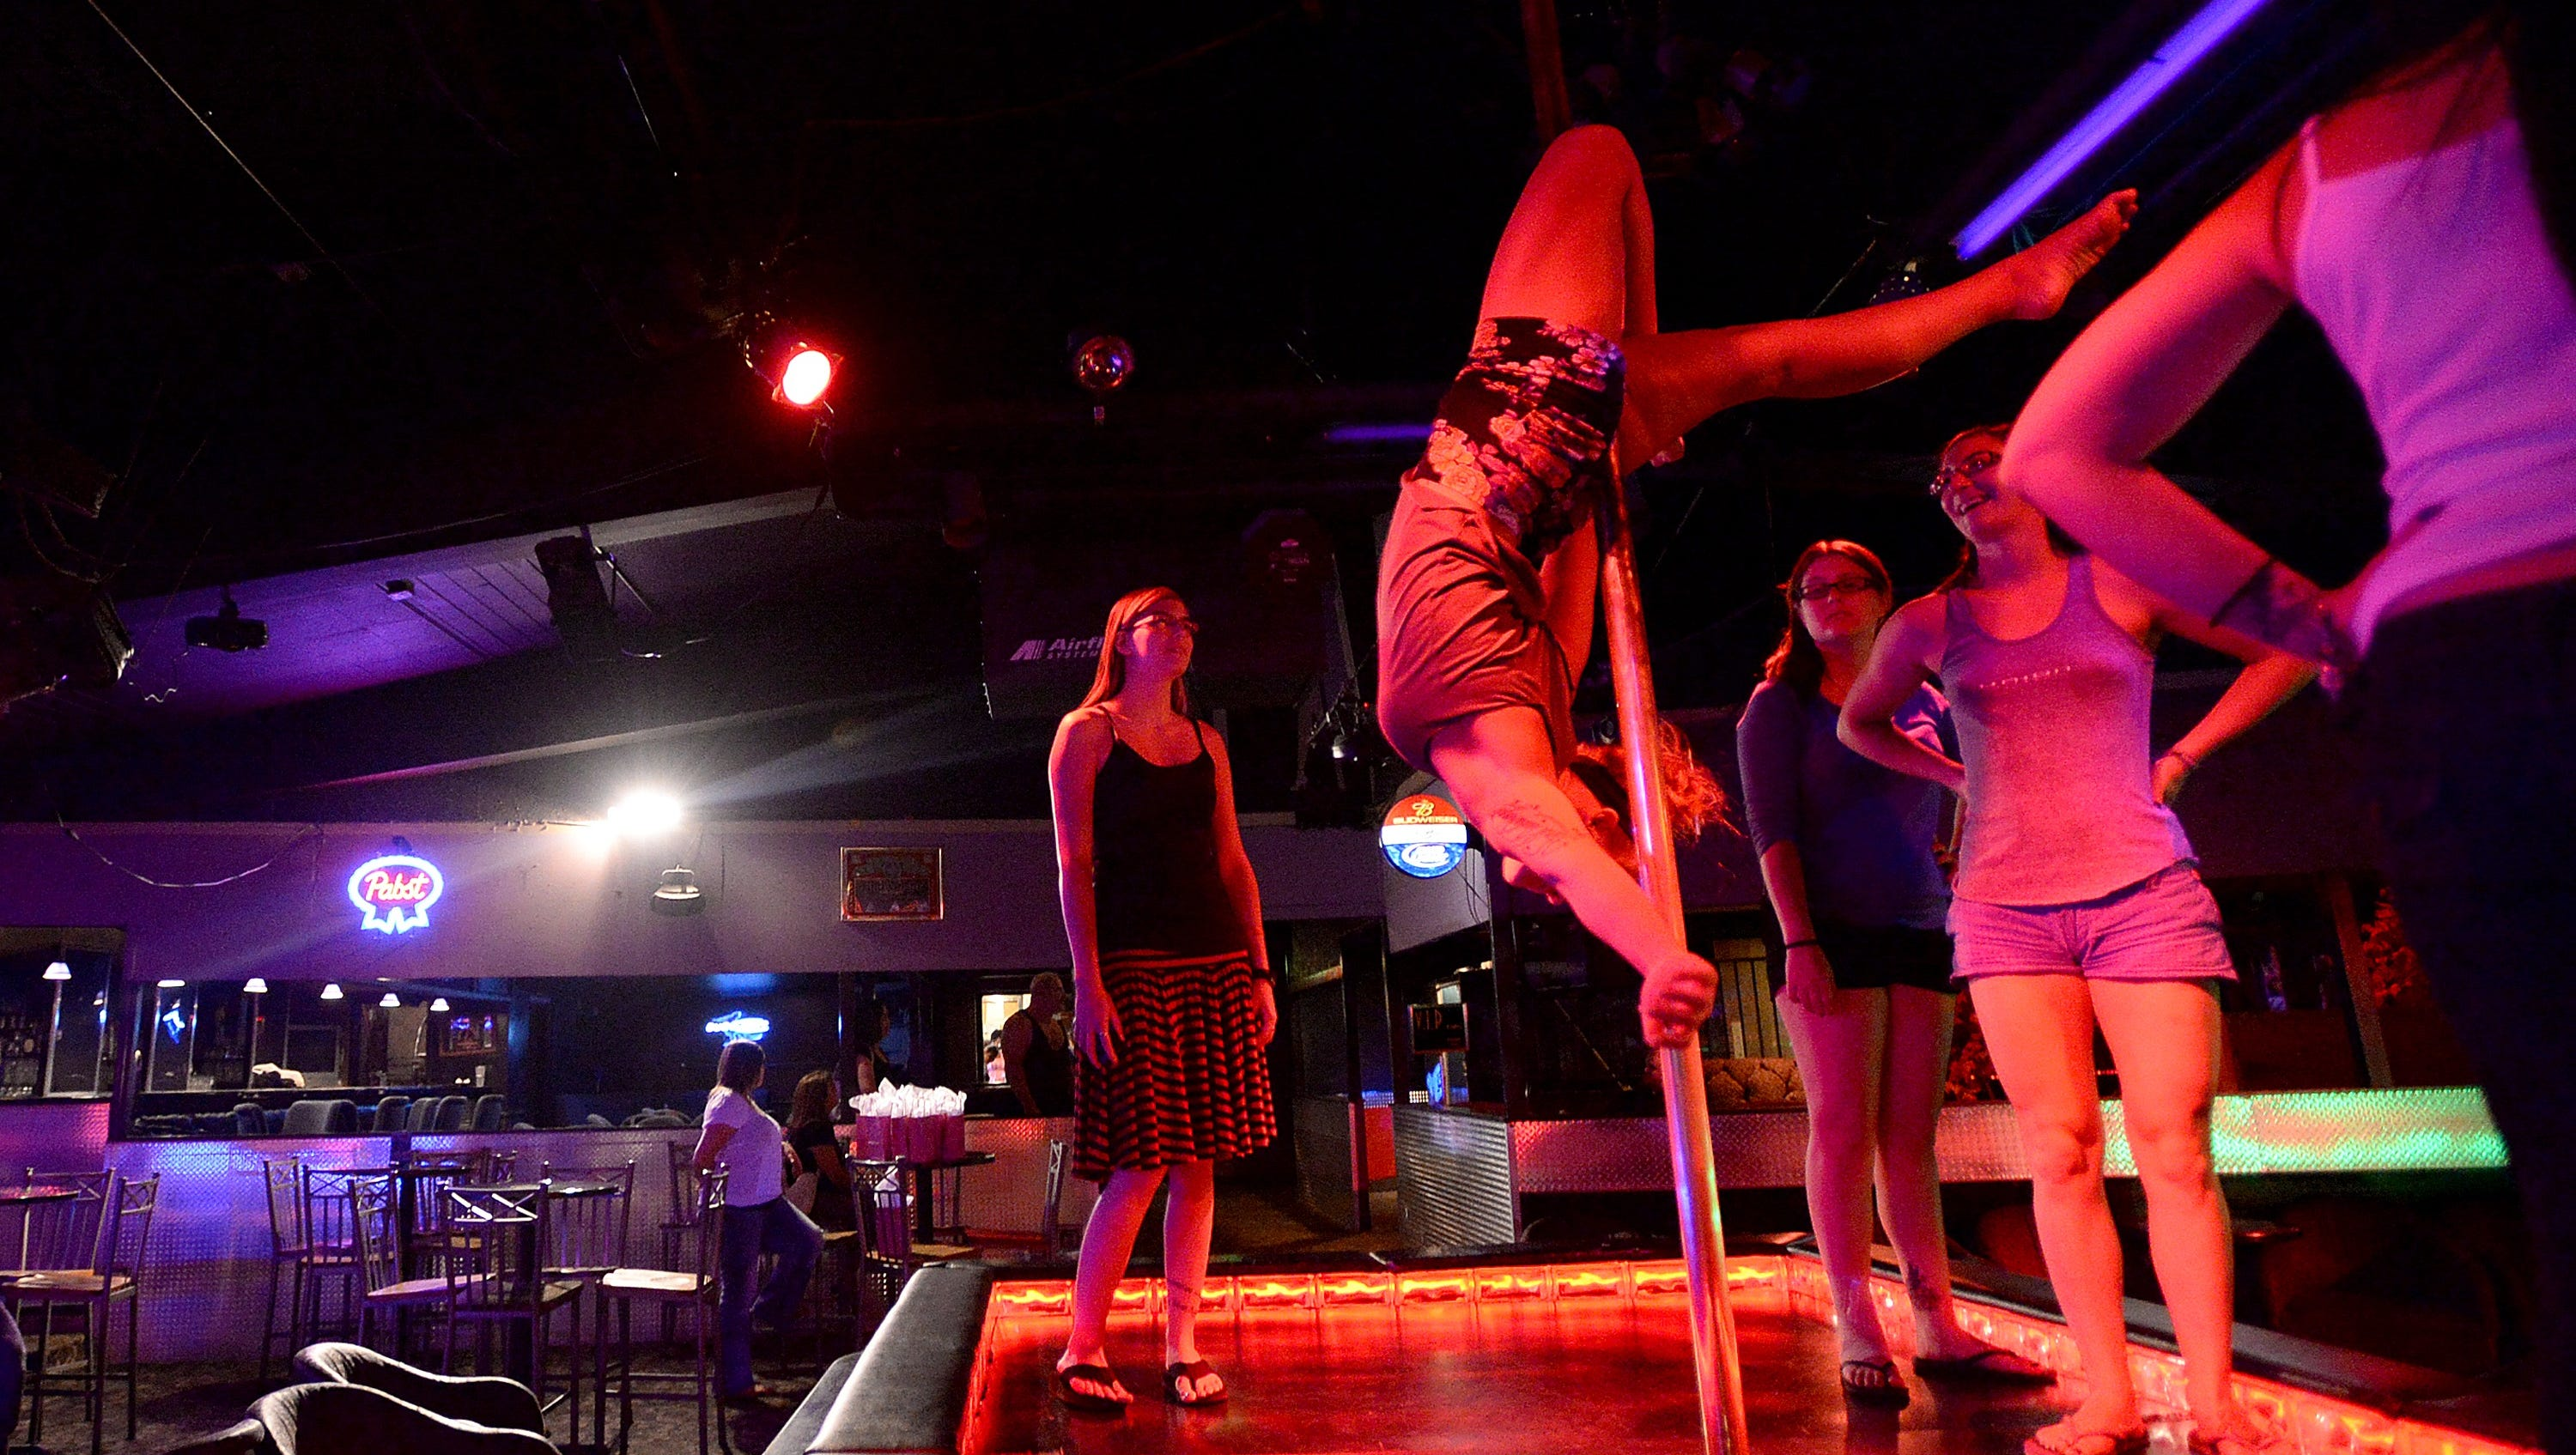 #NoCoAsk: Why doesnt Fort Collins have a strip club?